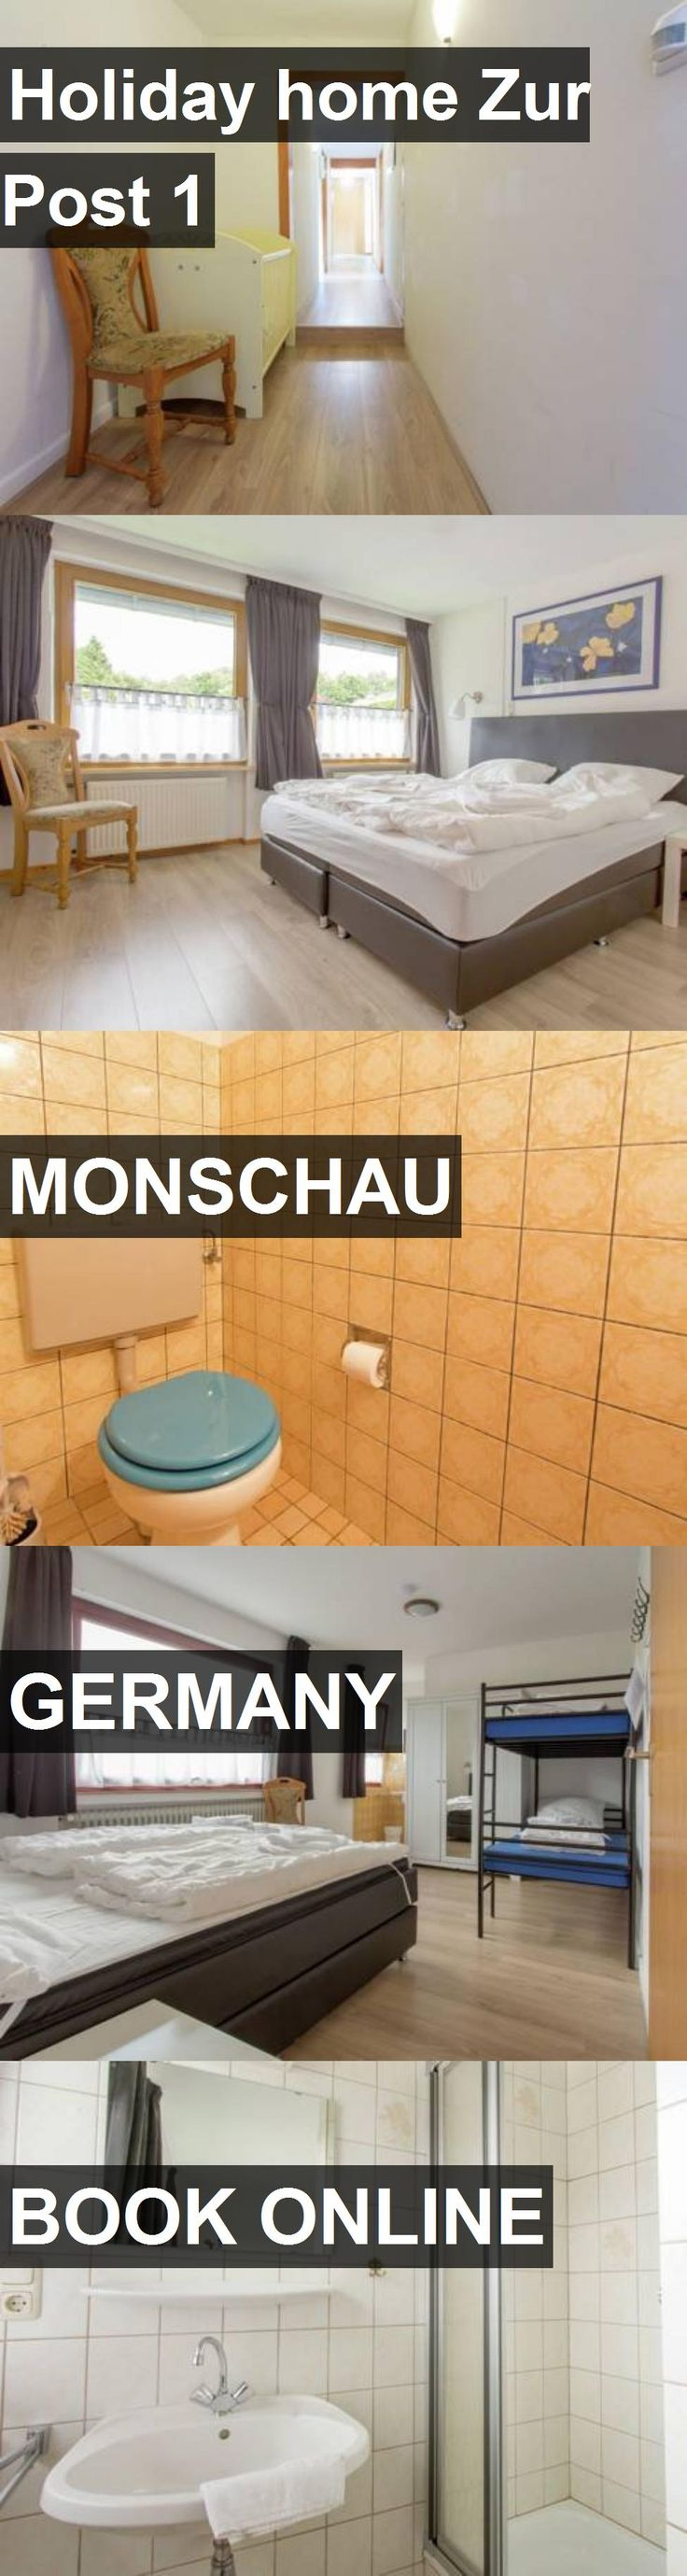 Hotel Holiday home Zur Post 1 in Monschau, Germany. For more information, photos, reviews and best prices please follow the link. #Germany #Monschau #travel #vacation #hotel